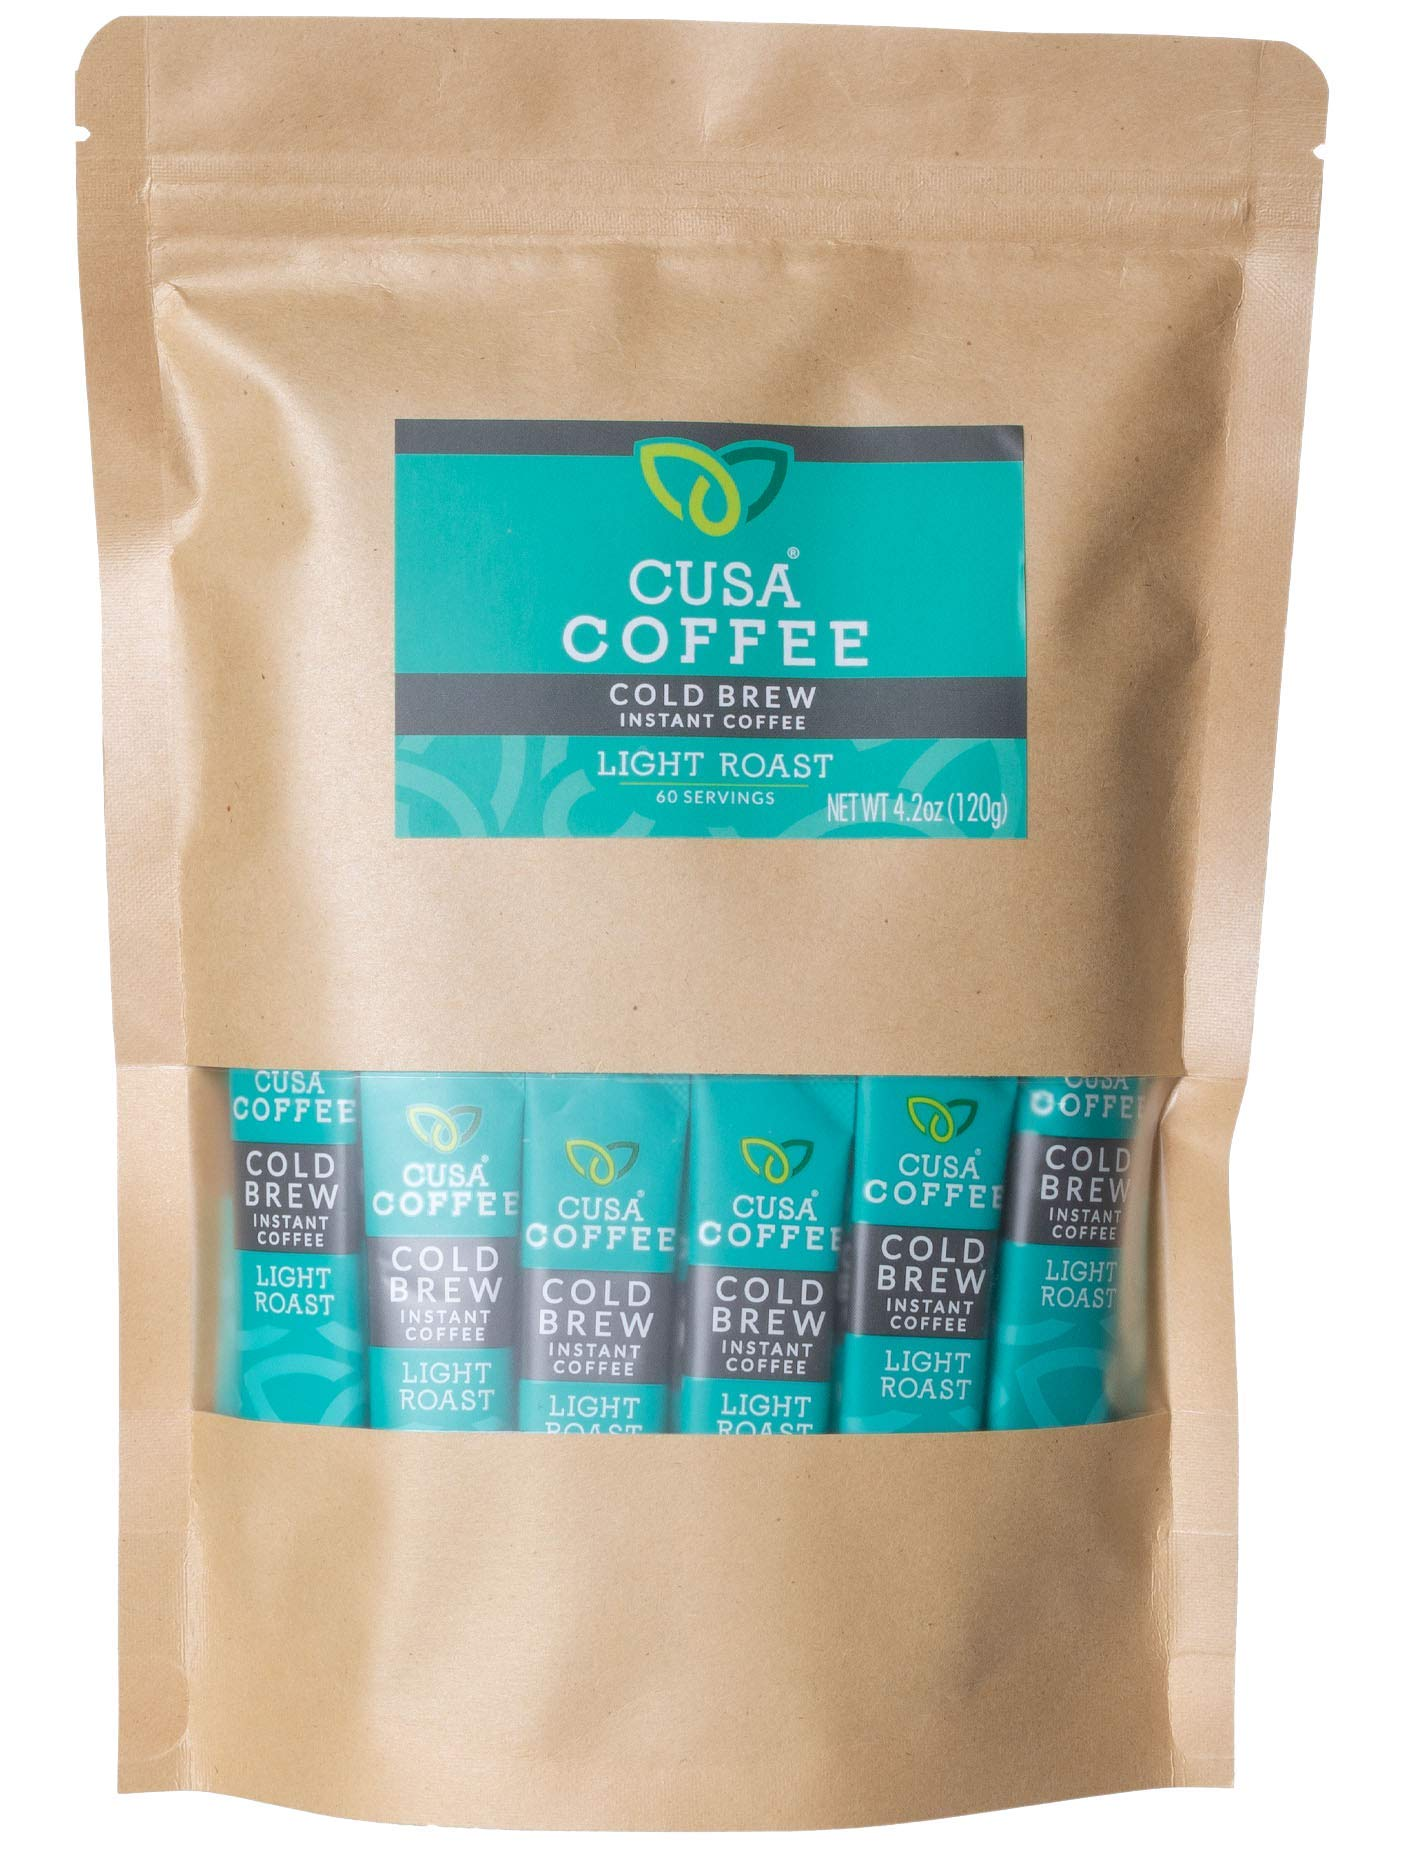 Cusa Coffee: Light Roast Cold Brew Instant Coffee - No Sugar or Preservatives - Ready in Seconds - Hot or Iced (60 Servings)